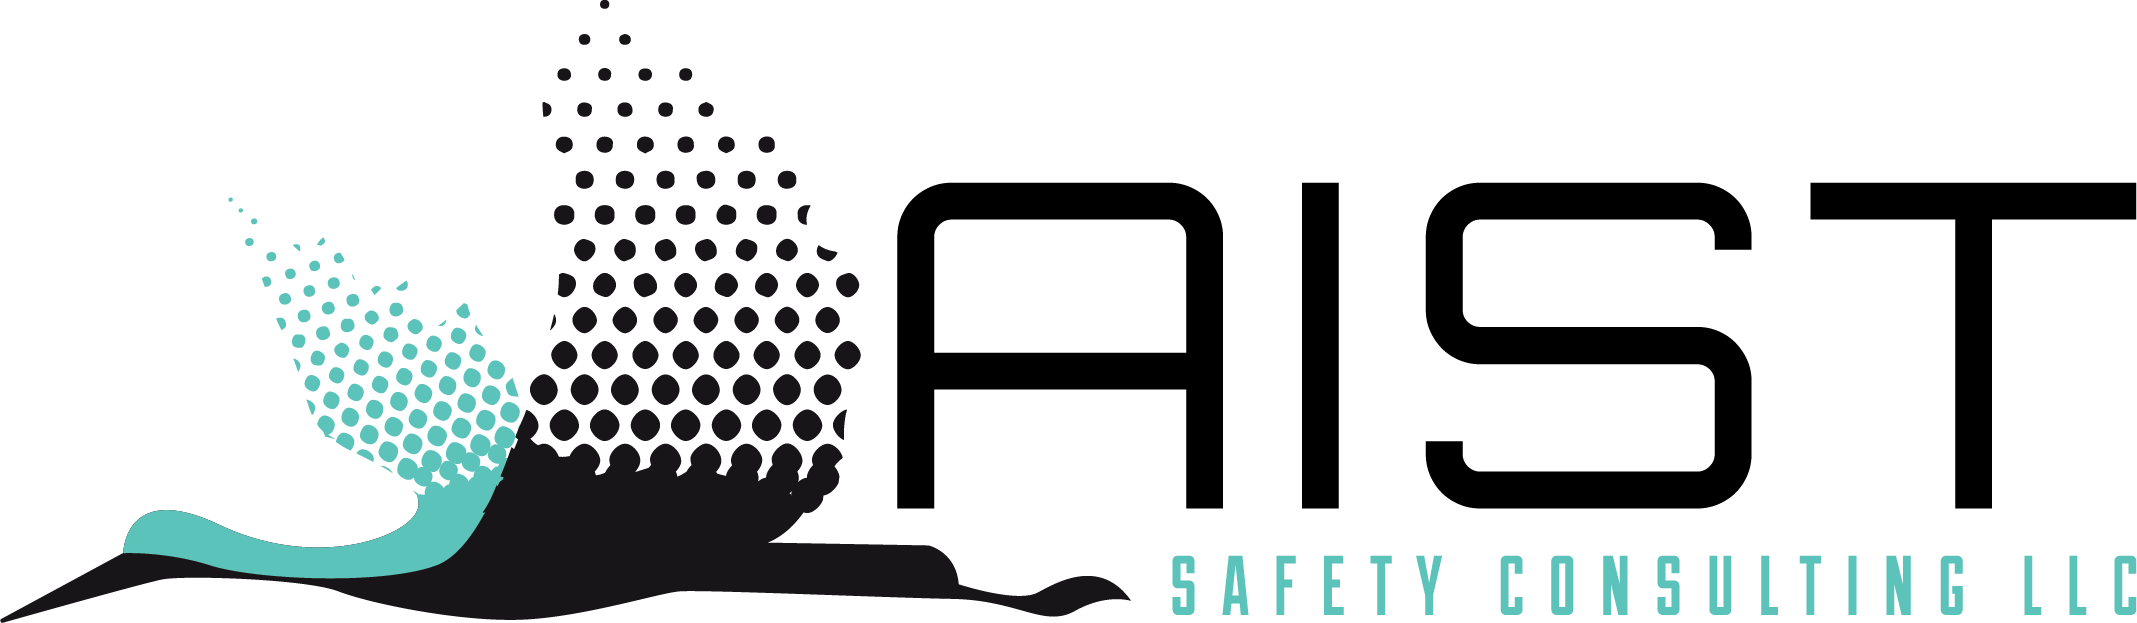 AIST Safety Consulting